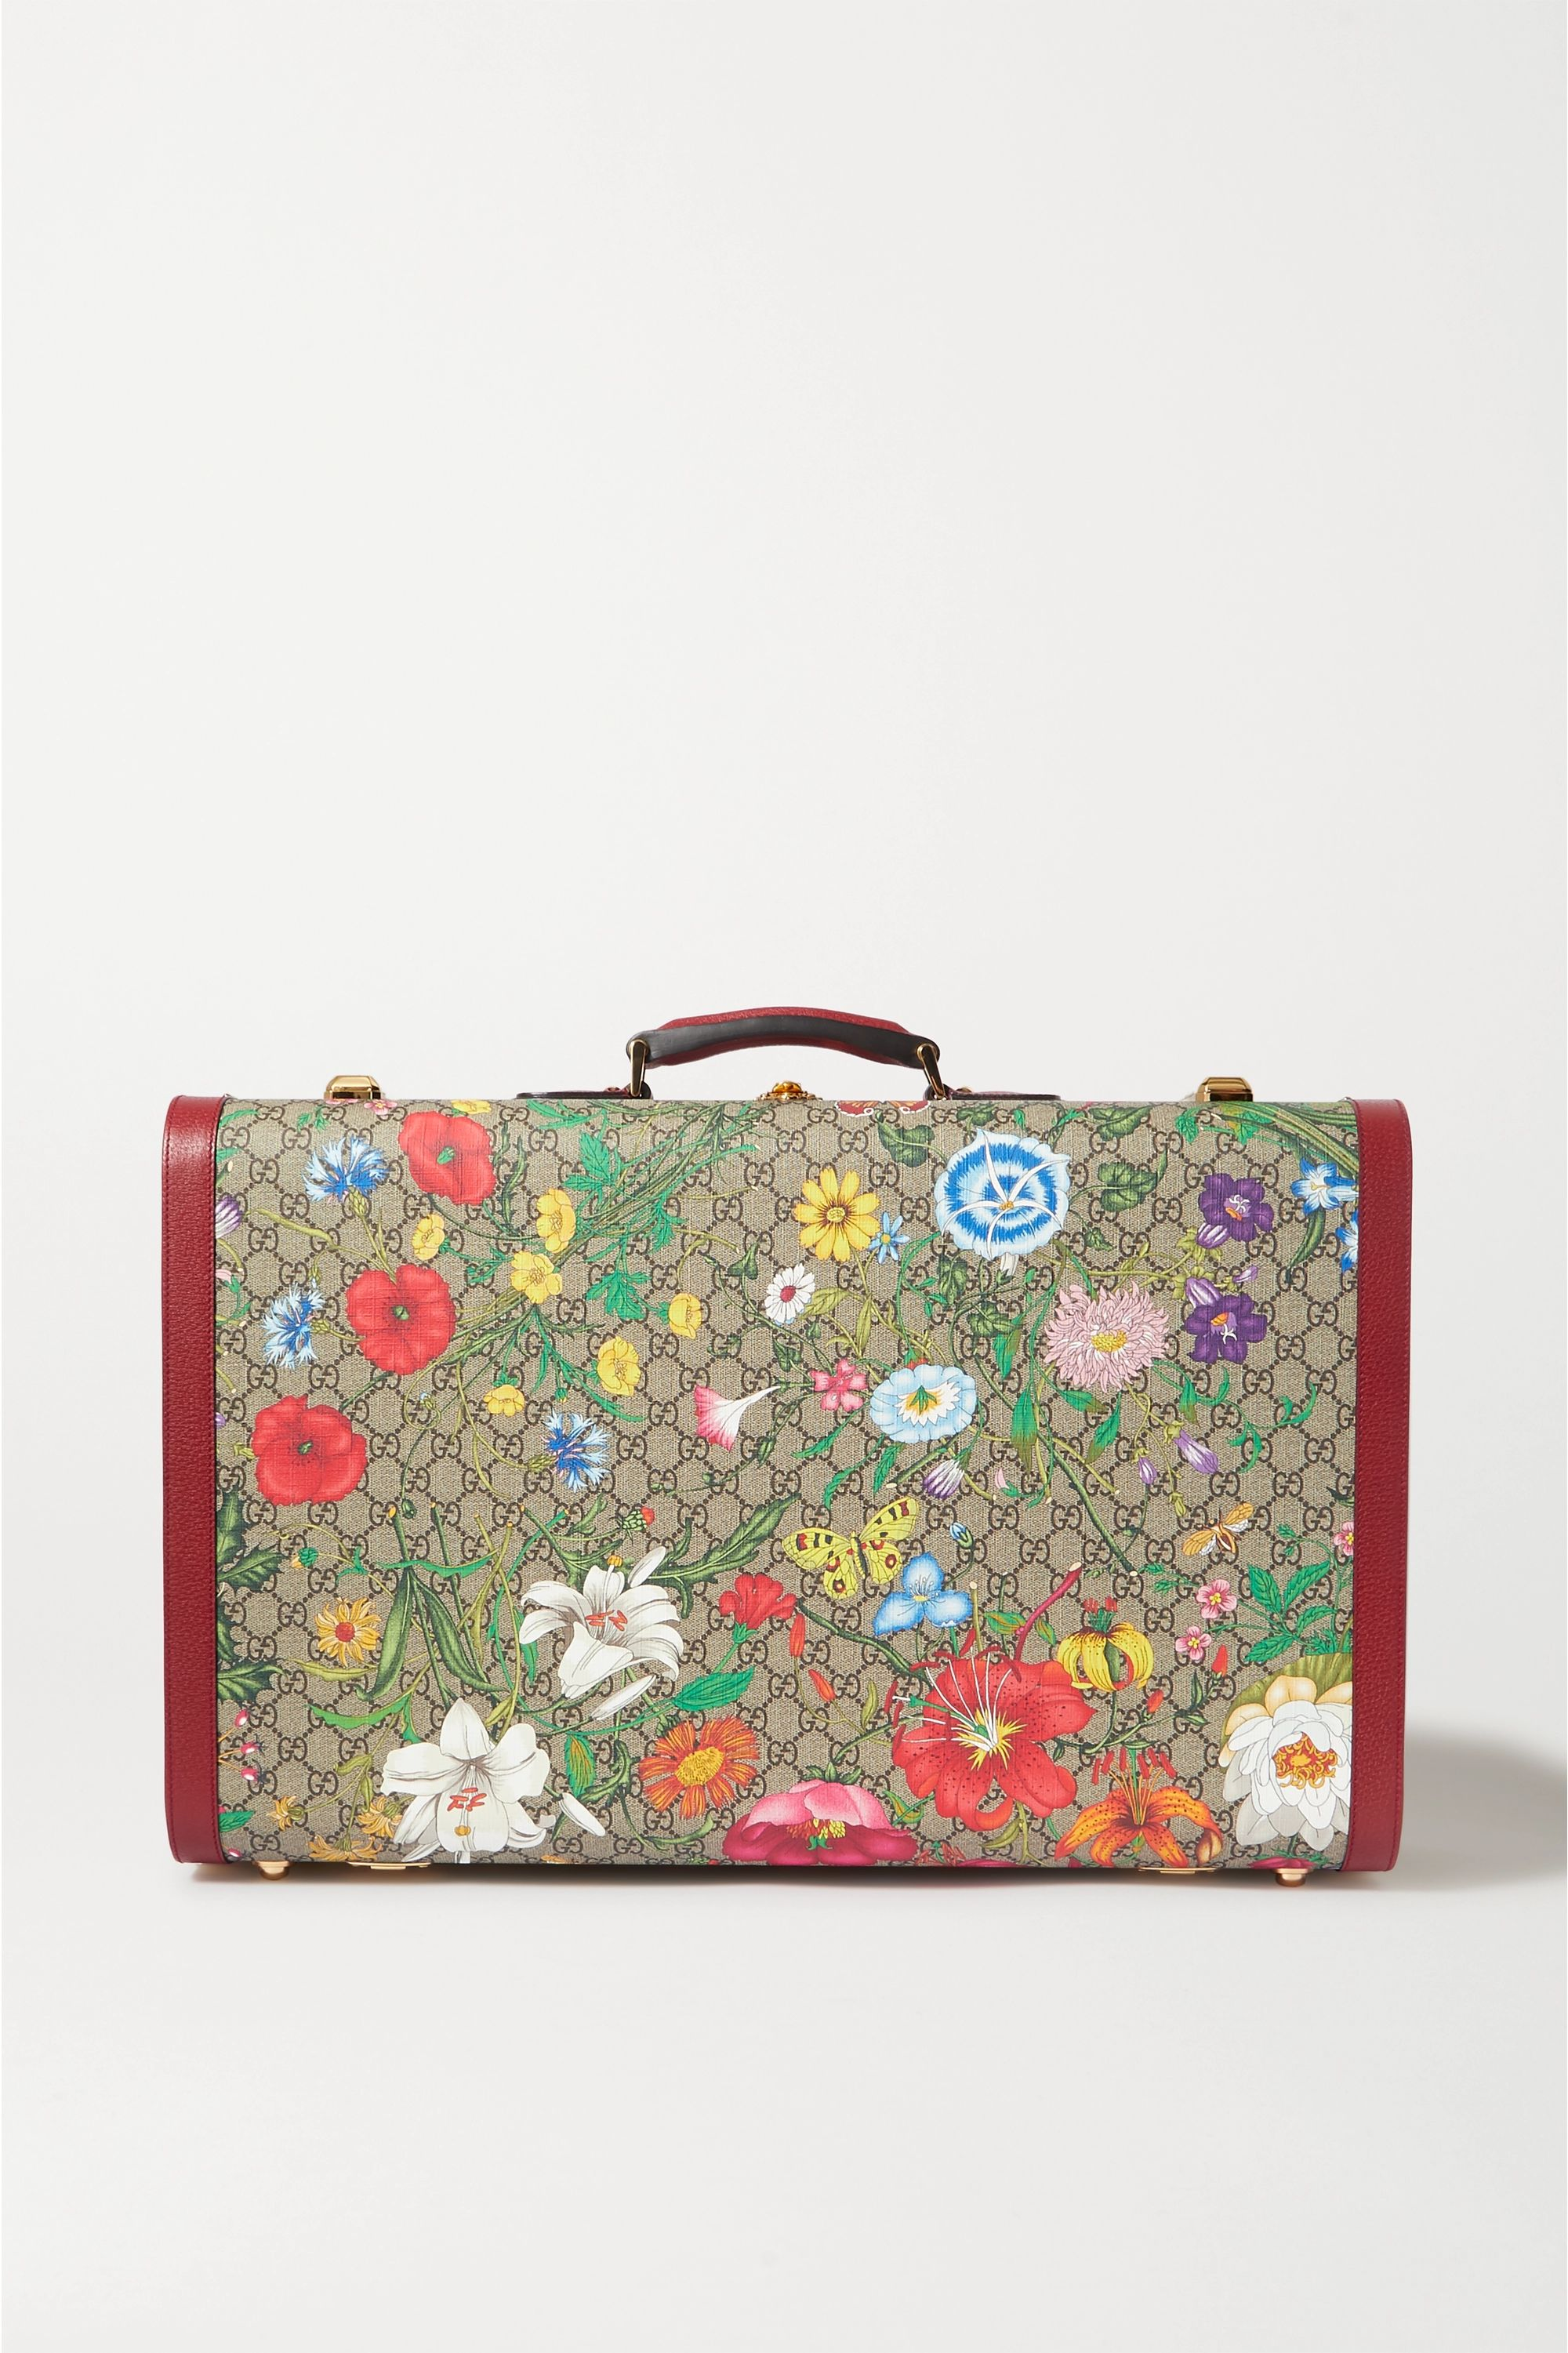 Gucci Ophidia large textured leather-trimmed printed coated-canvas suitcase